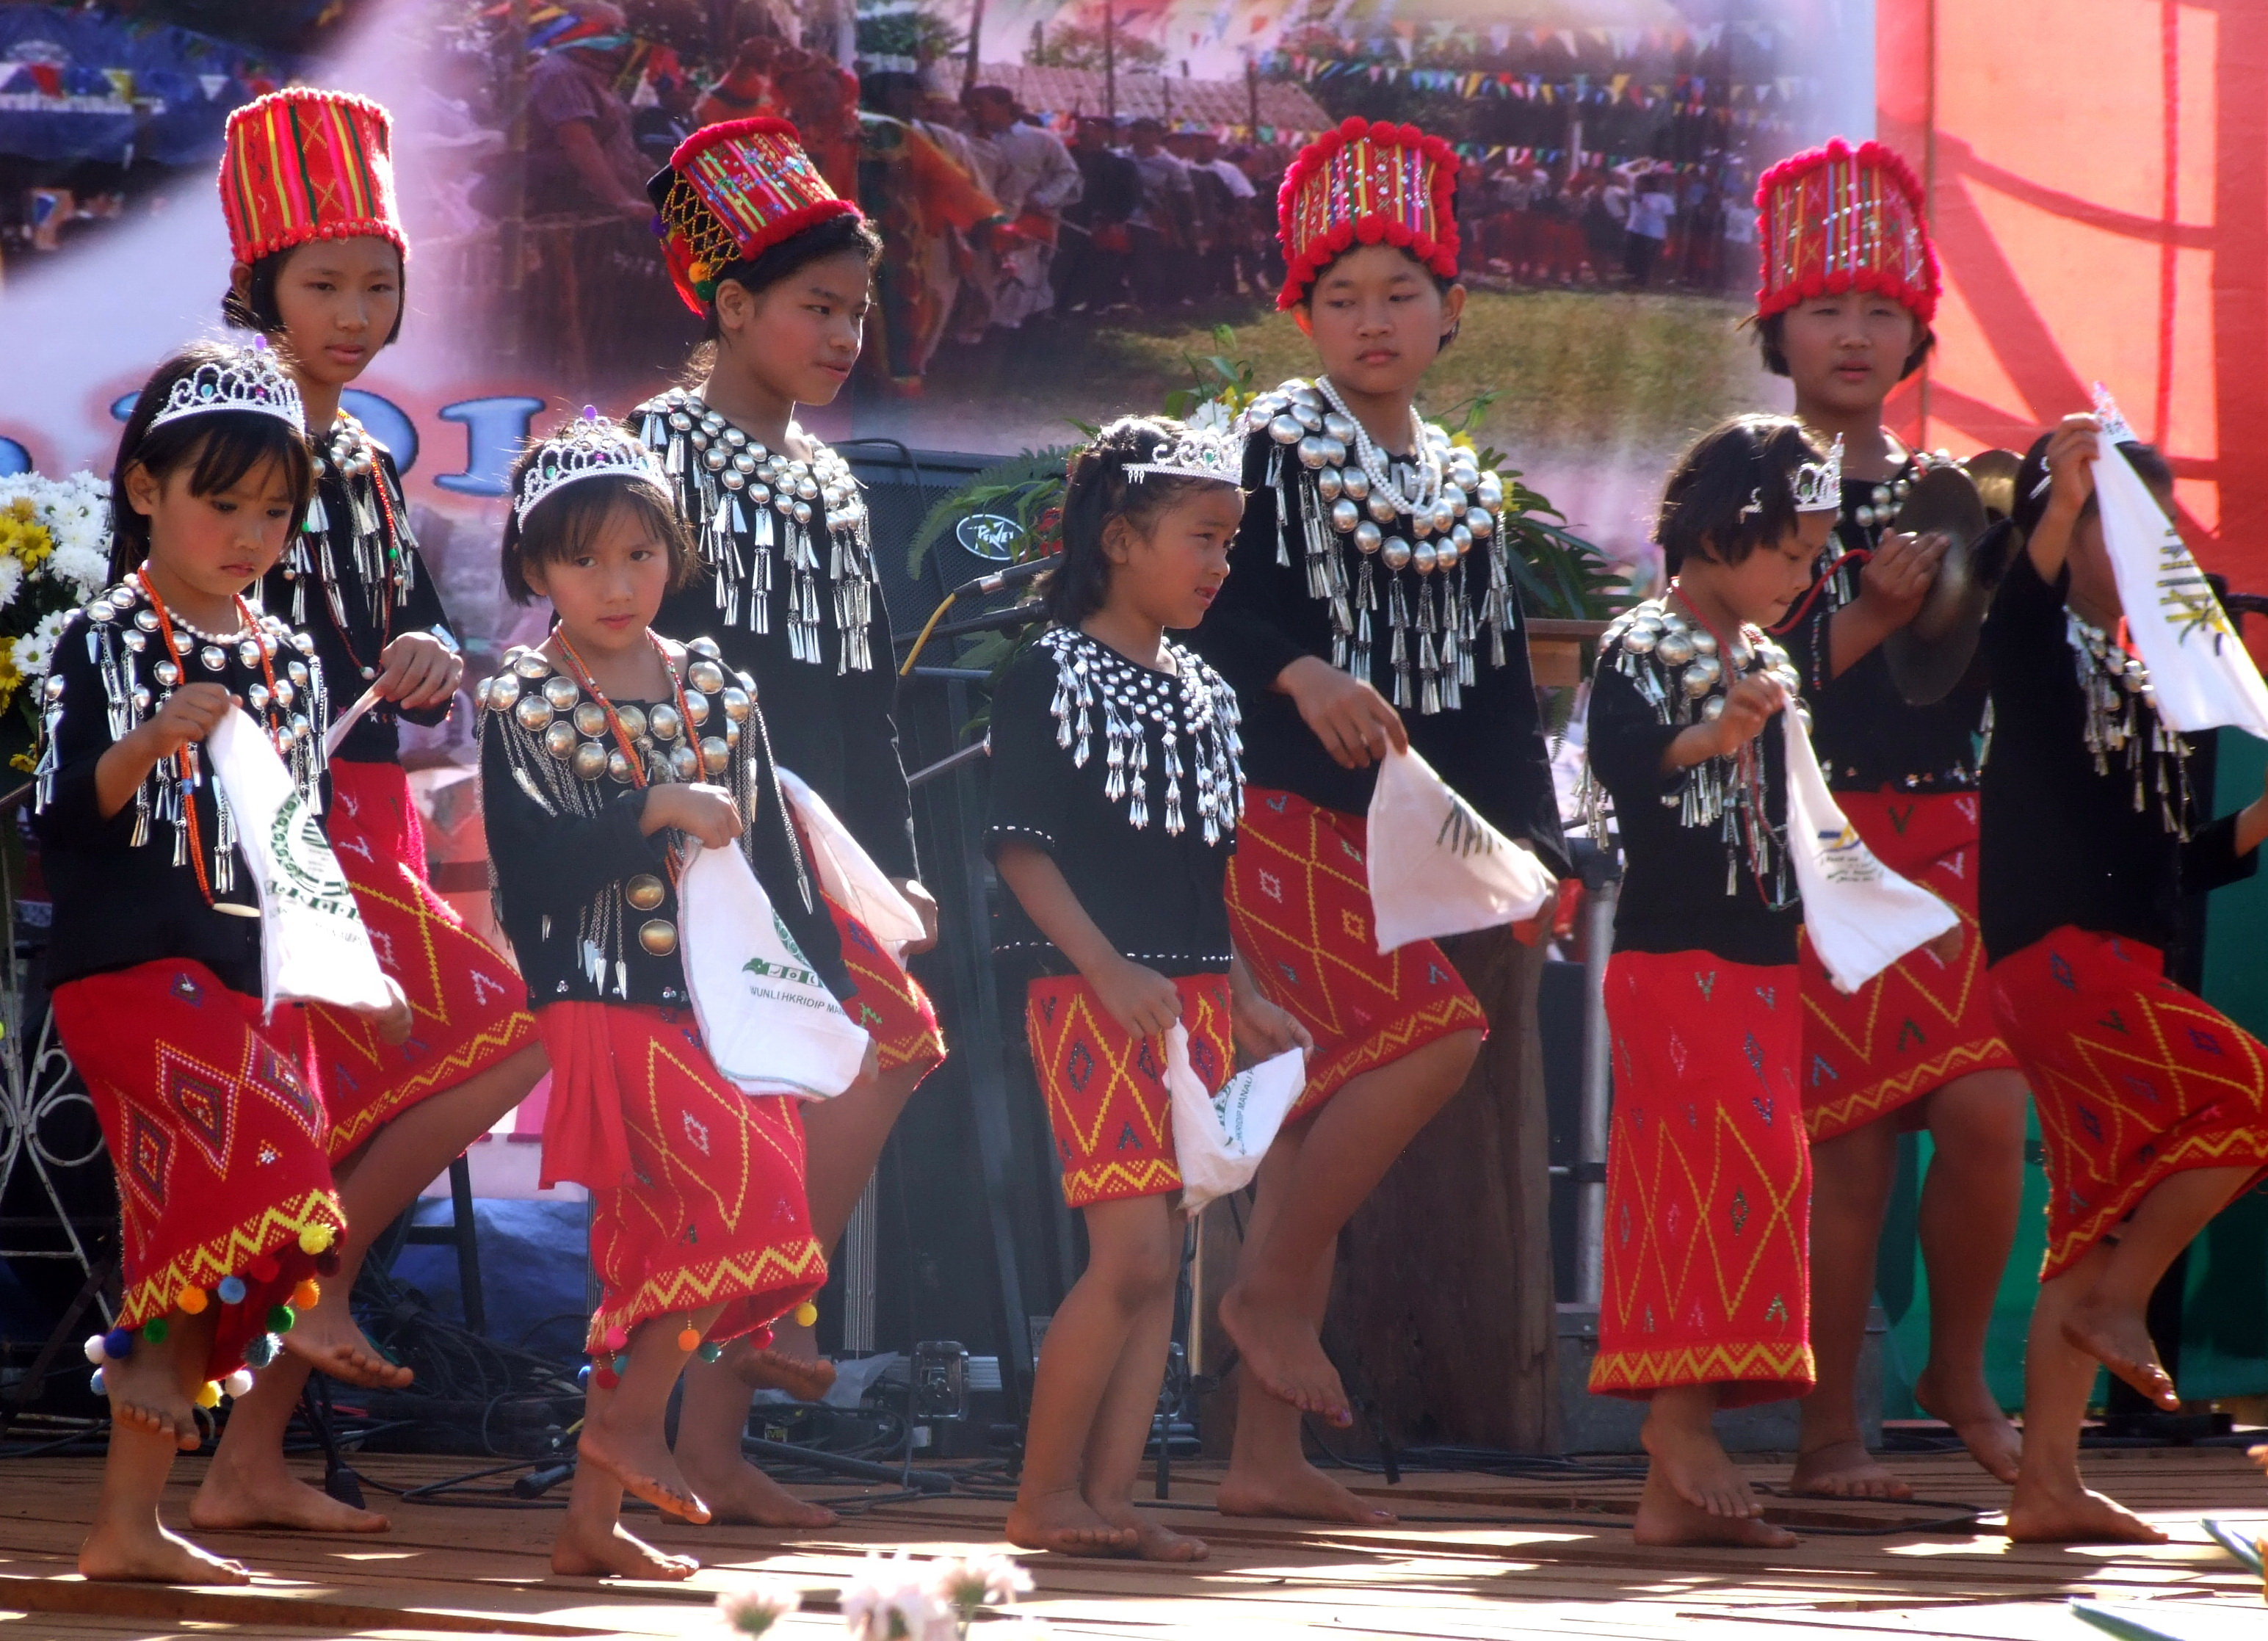 kachin Profile the kachin encompass a number of ethnic groups speaking almost a dozen distinct languages belonging to the tibeto-burman linguistic family who inhabit the same region in the northern part of burma on the border with china, mainly in kachin state.